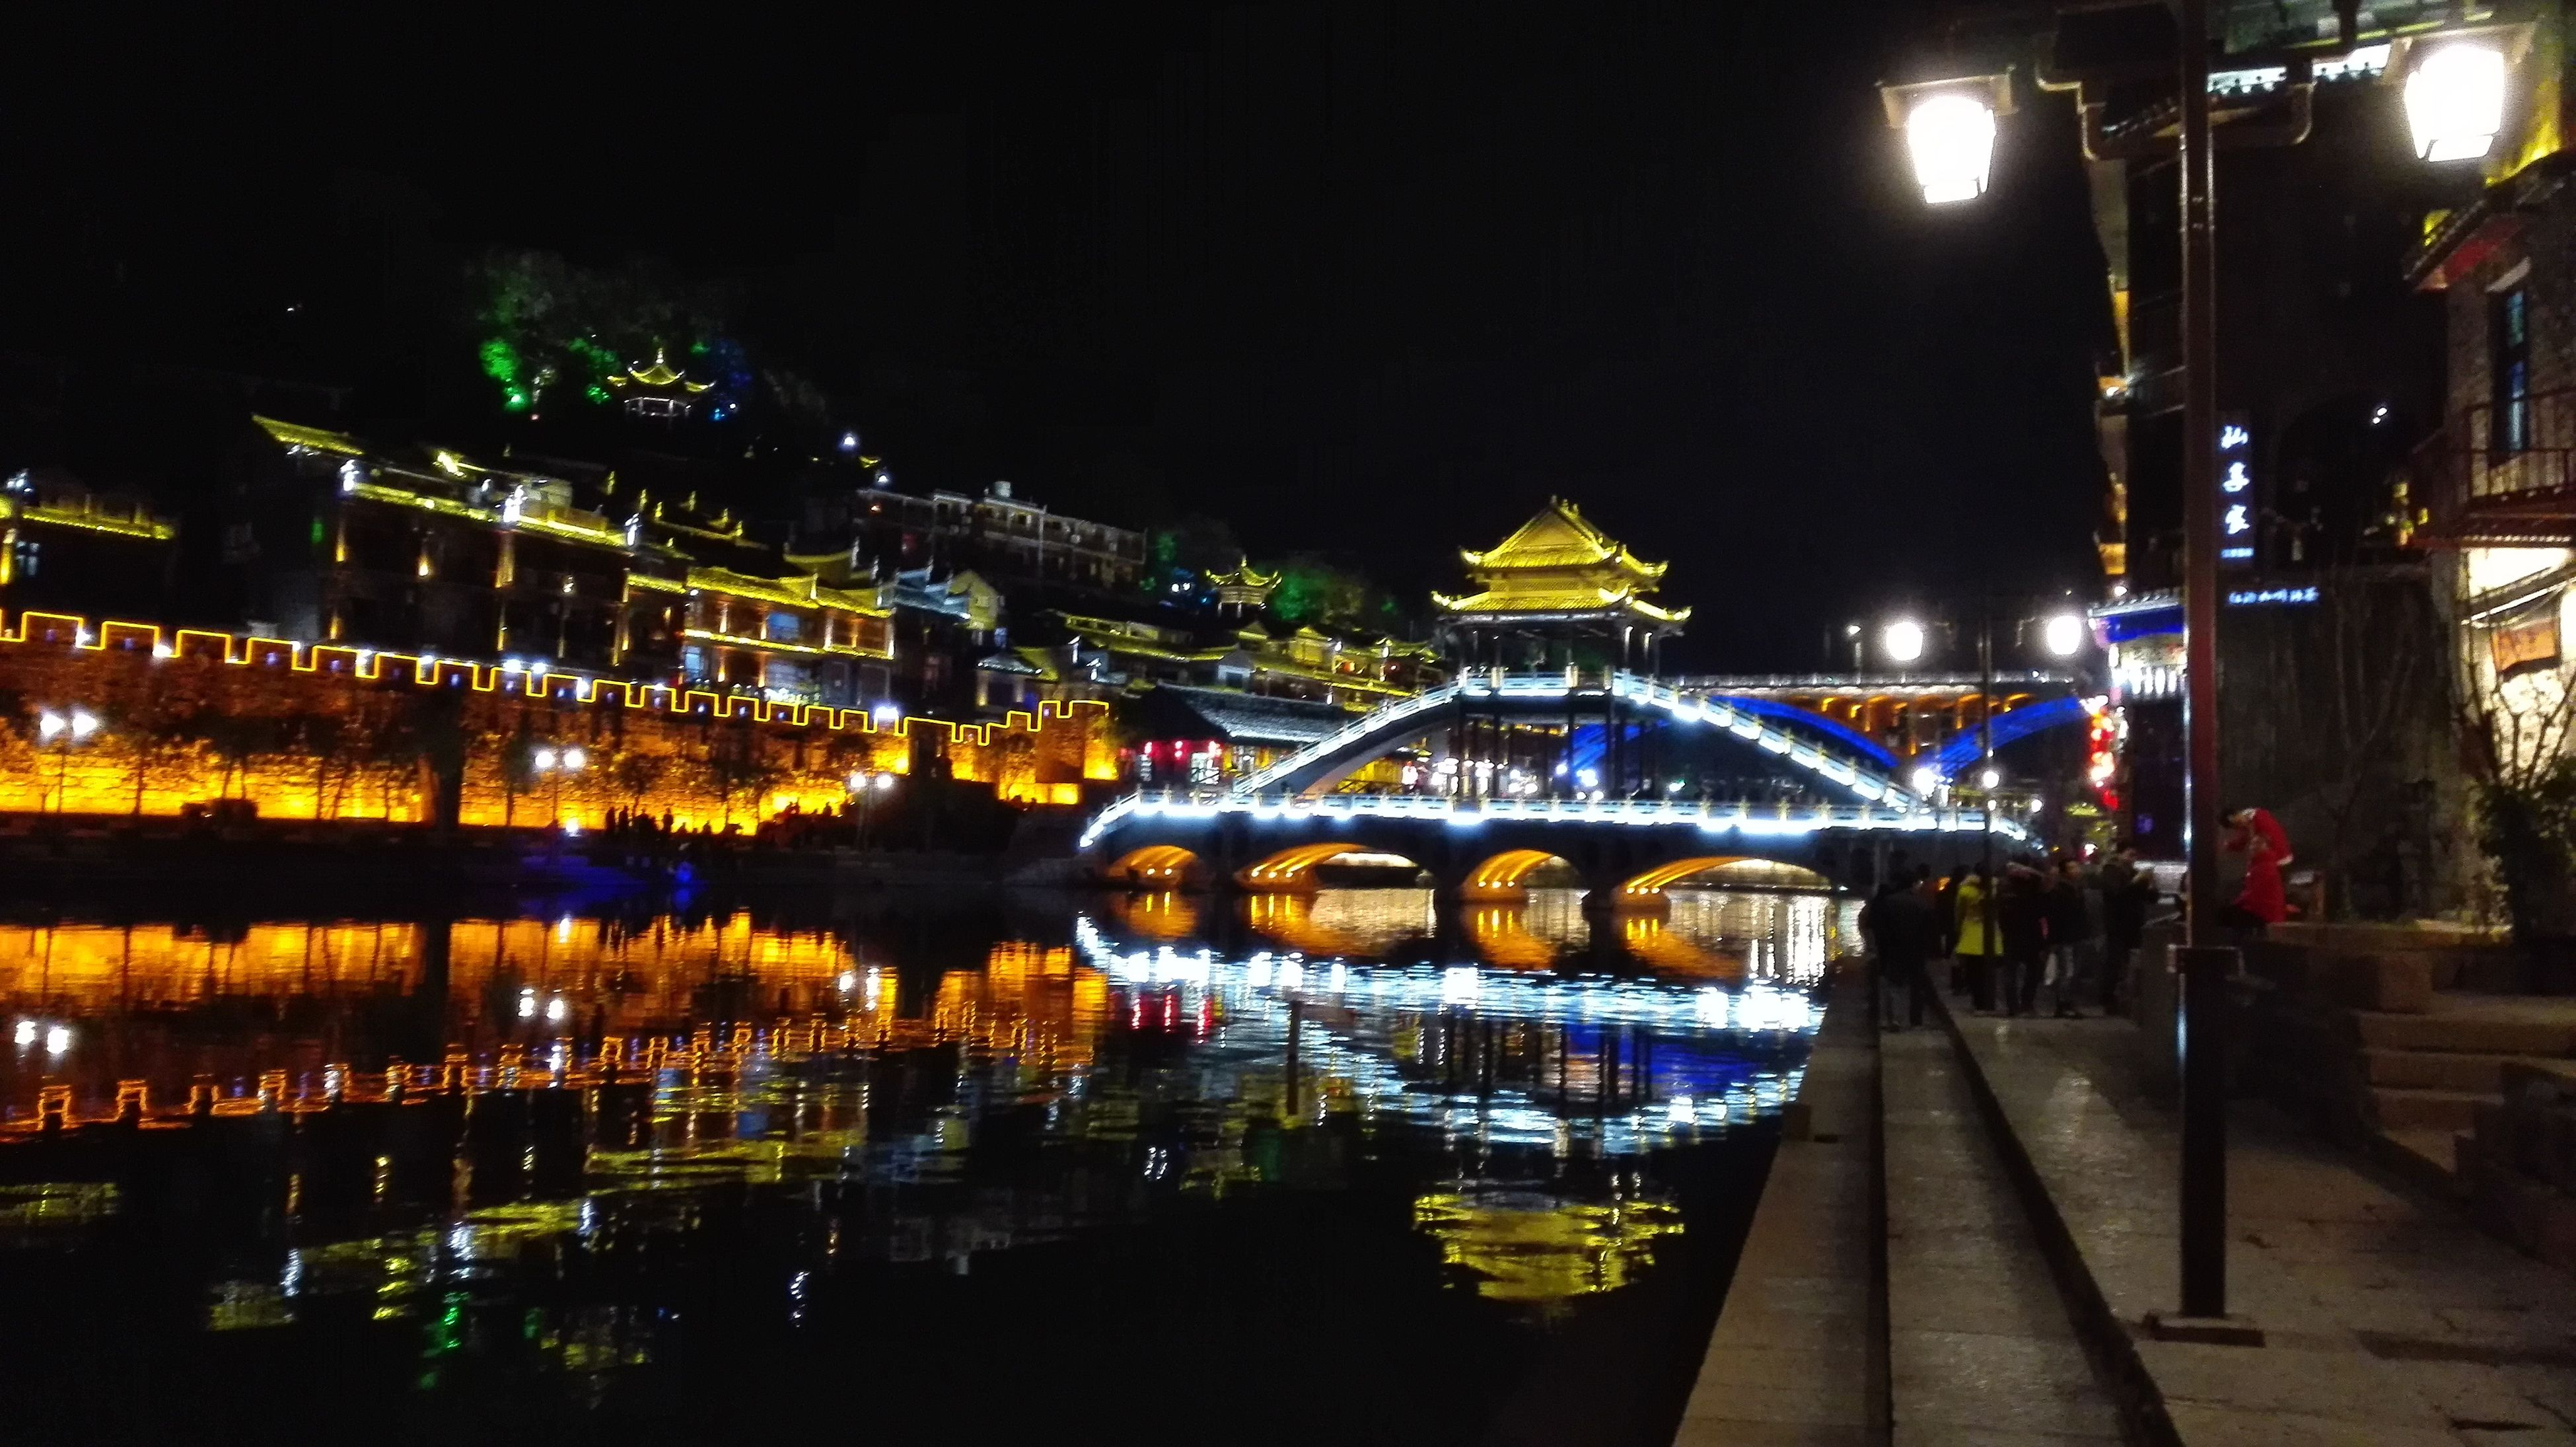 illuminated, night, architecture, built structure, building exterior, city, transportation, water, bridge - man made structure, lighting equipment, reflection, sky, street light, city life, river, connection, outdoors, mode of transport, high angle view, light - natural phenomenon